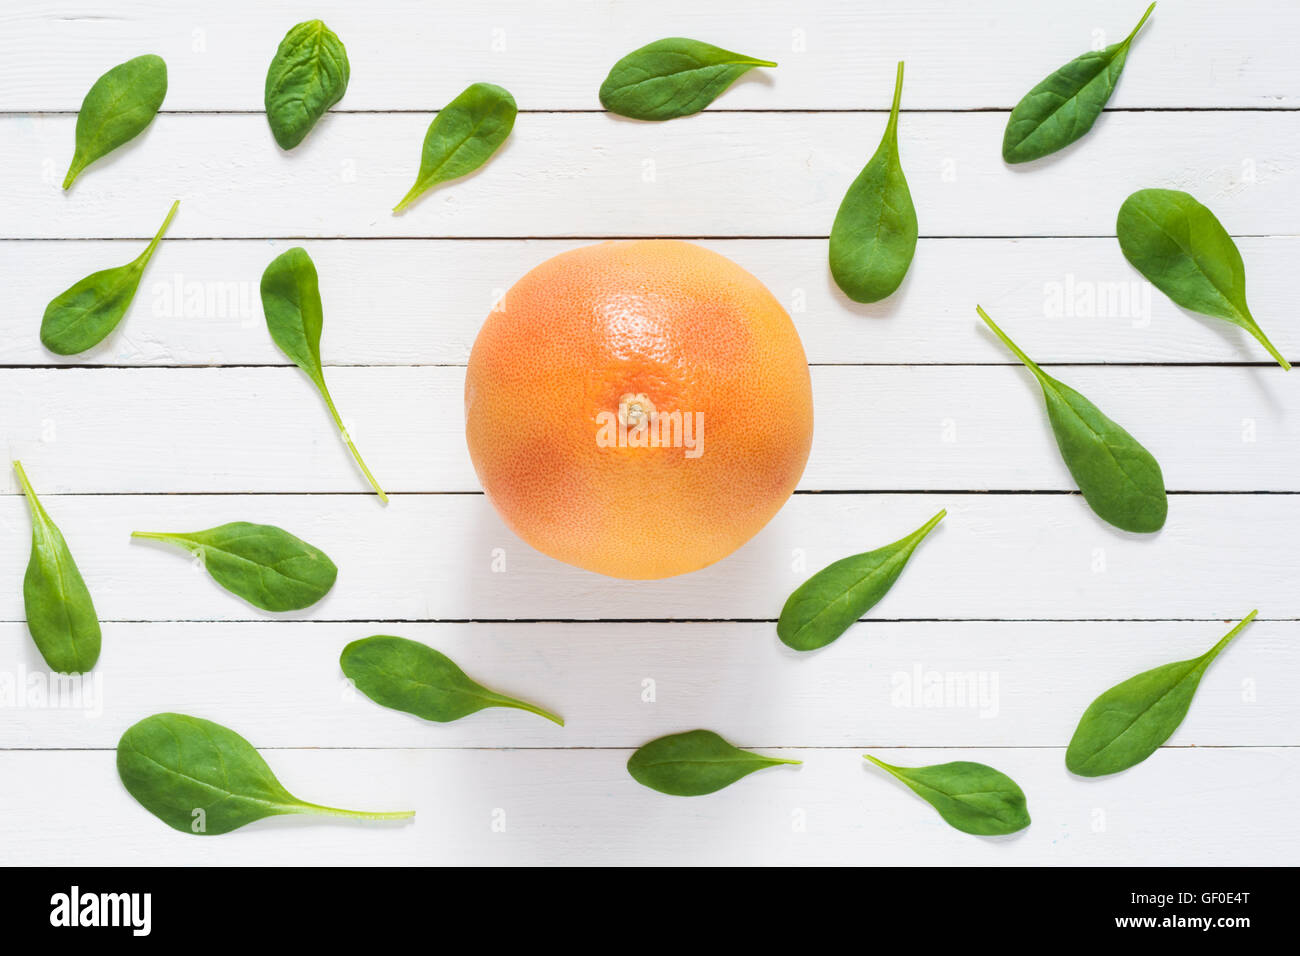 Fruit pattern. Spinach leaves and red grapefruit on white wooden planks background. Flat lay of fresh healthy food - Stock Image